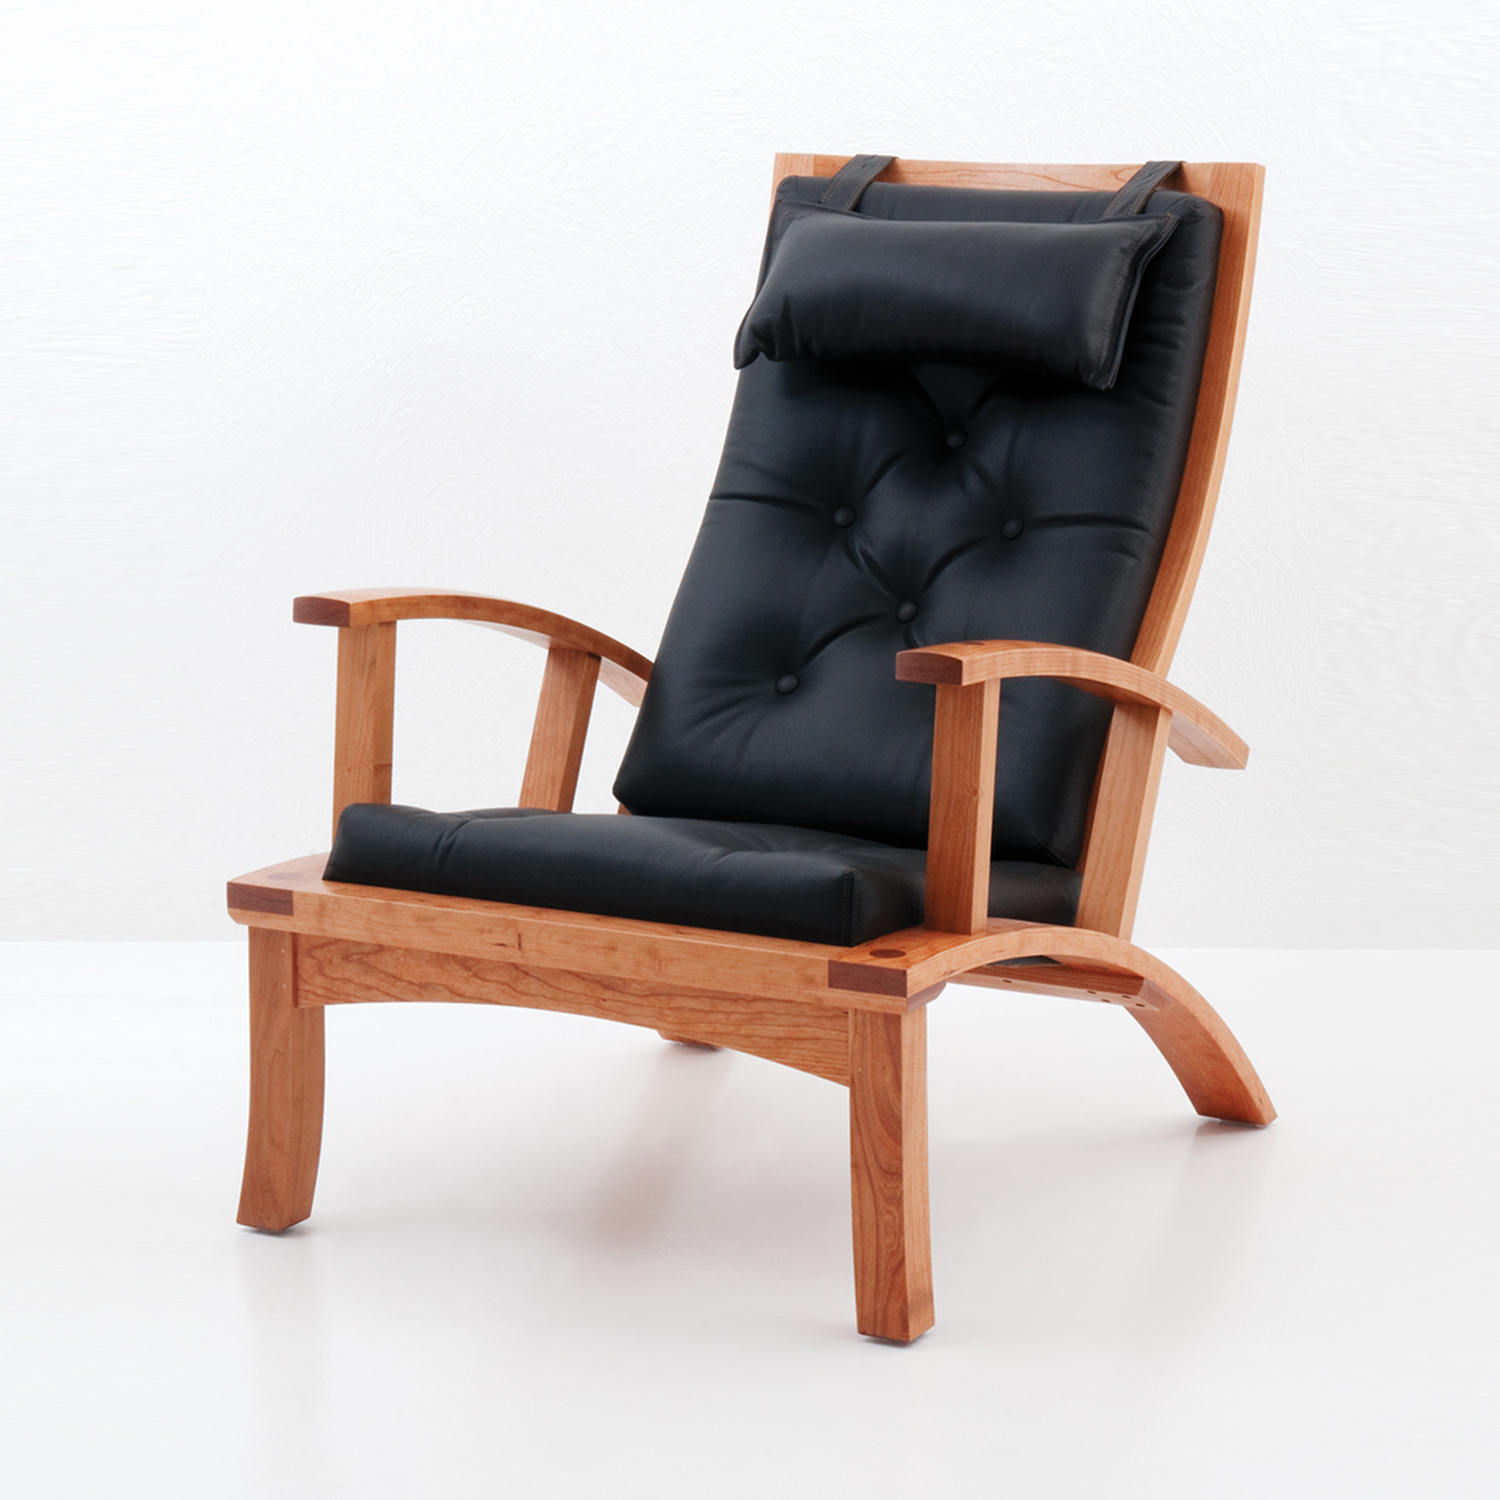 Lolling Chair